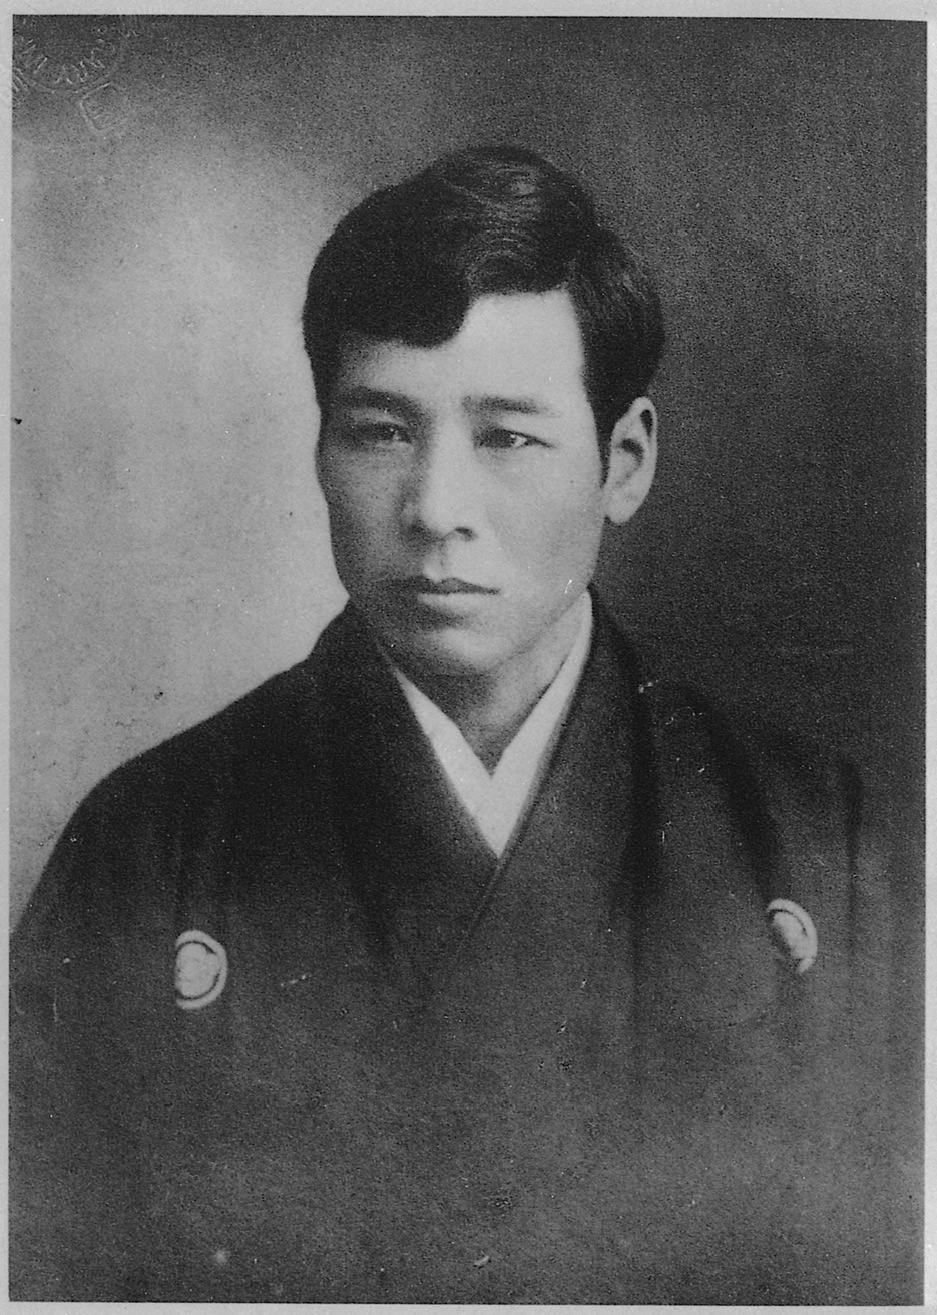 Process Improvement Pioneers - Young Sakichi Toyoda